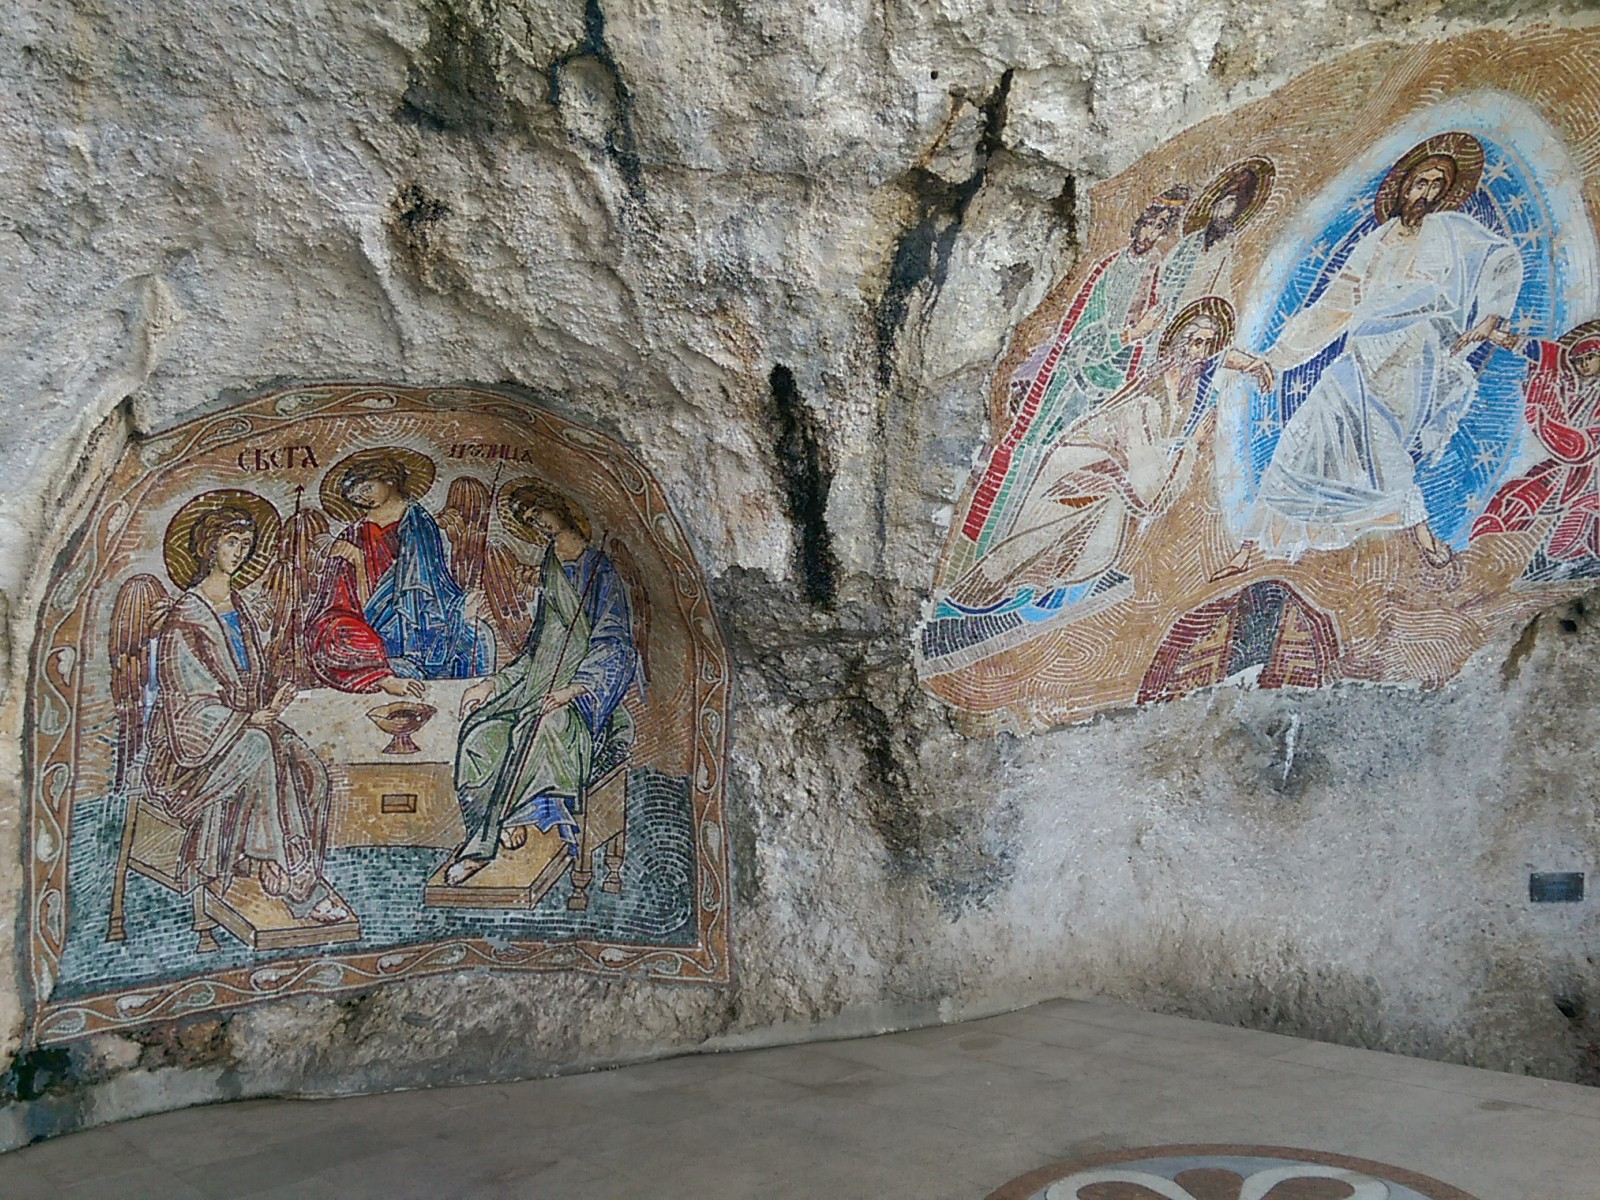 Raw rugged rock face with colourful but faded mosaics of religious figures